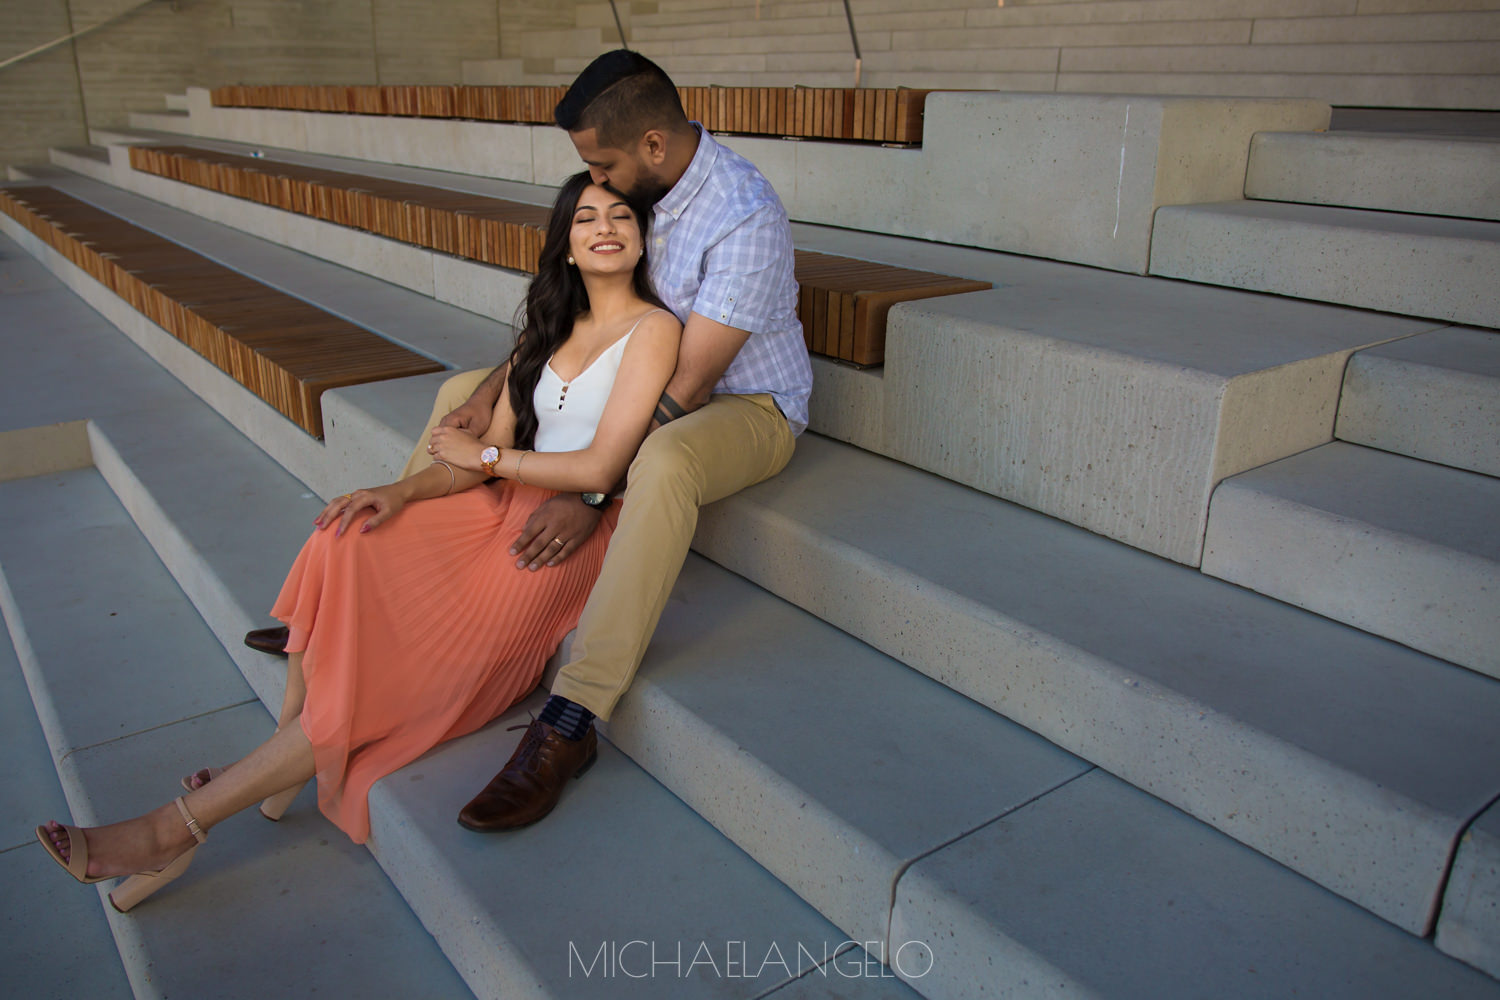 00007Edmonton-Photographer-Engagement-Sessions-Amandeep-&-Hardeep1320-Edit.jpg